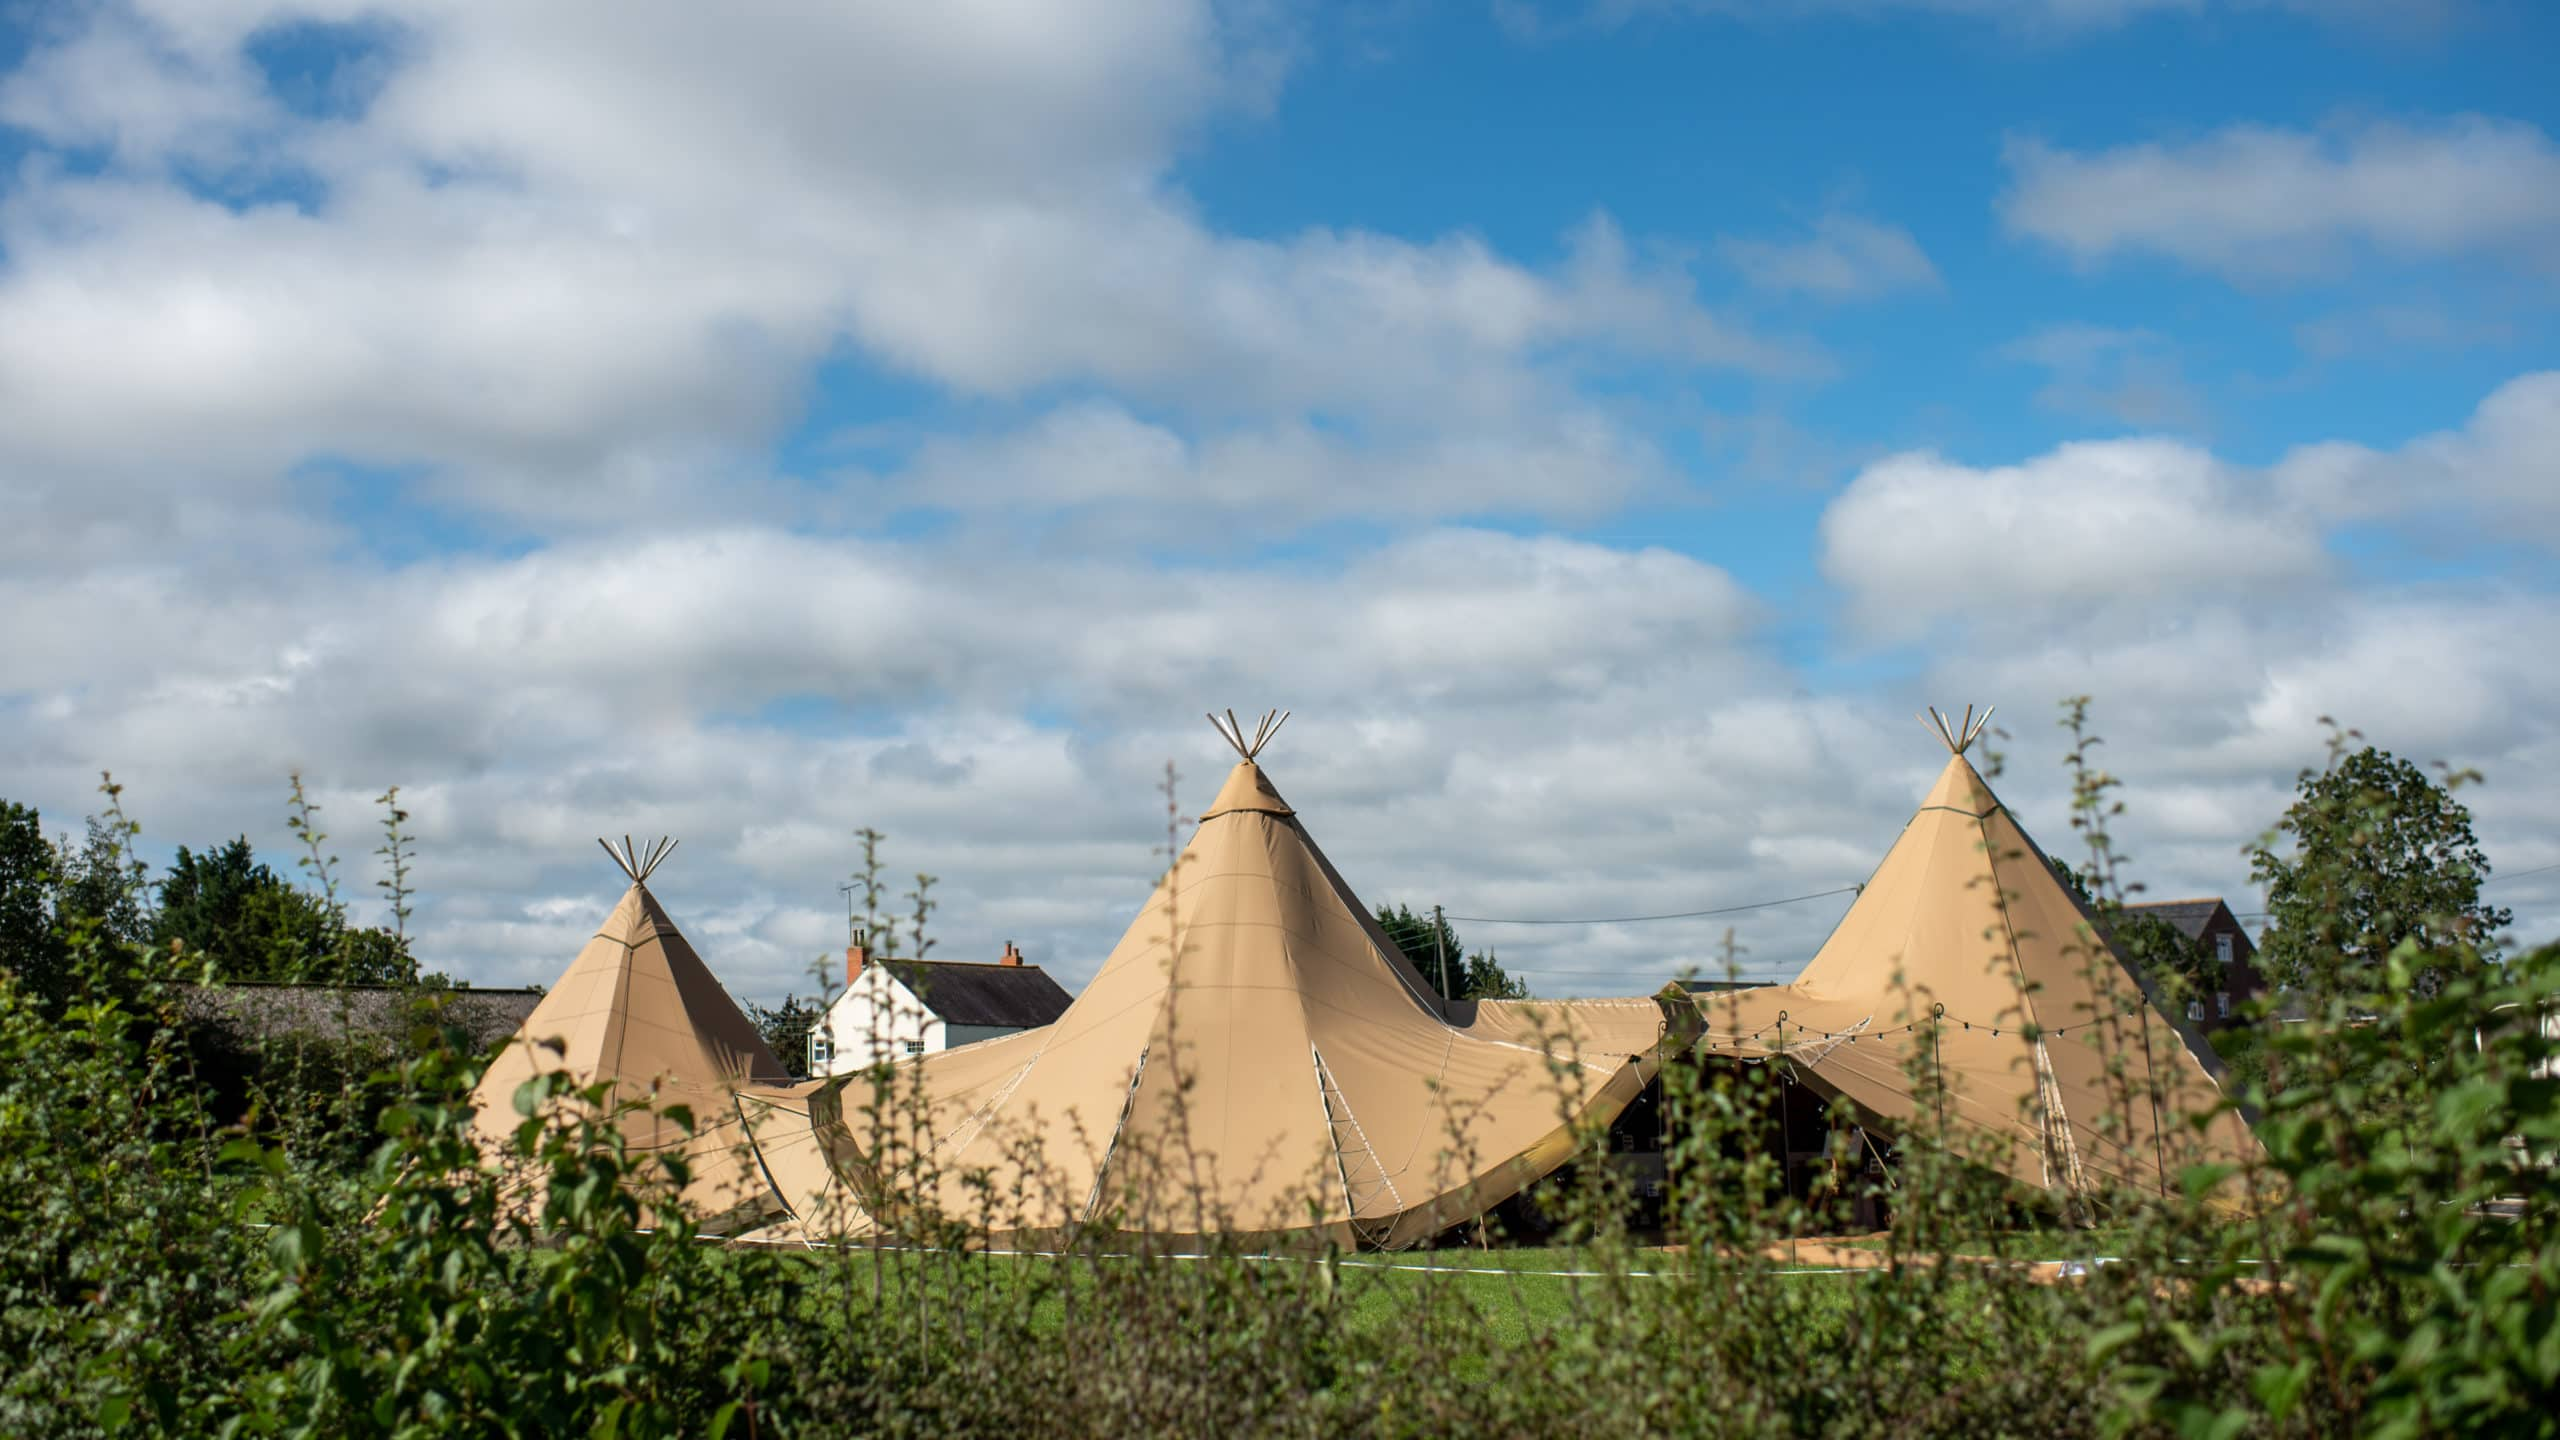 Tipi wedding venue in the sunshine